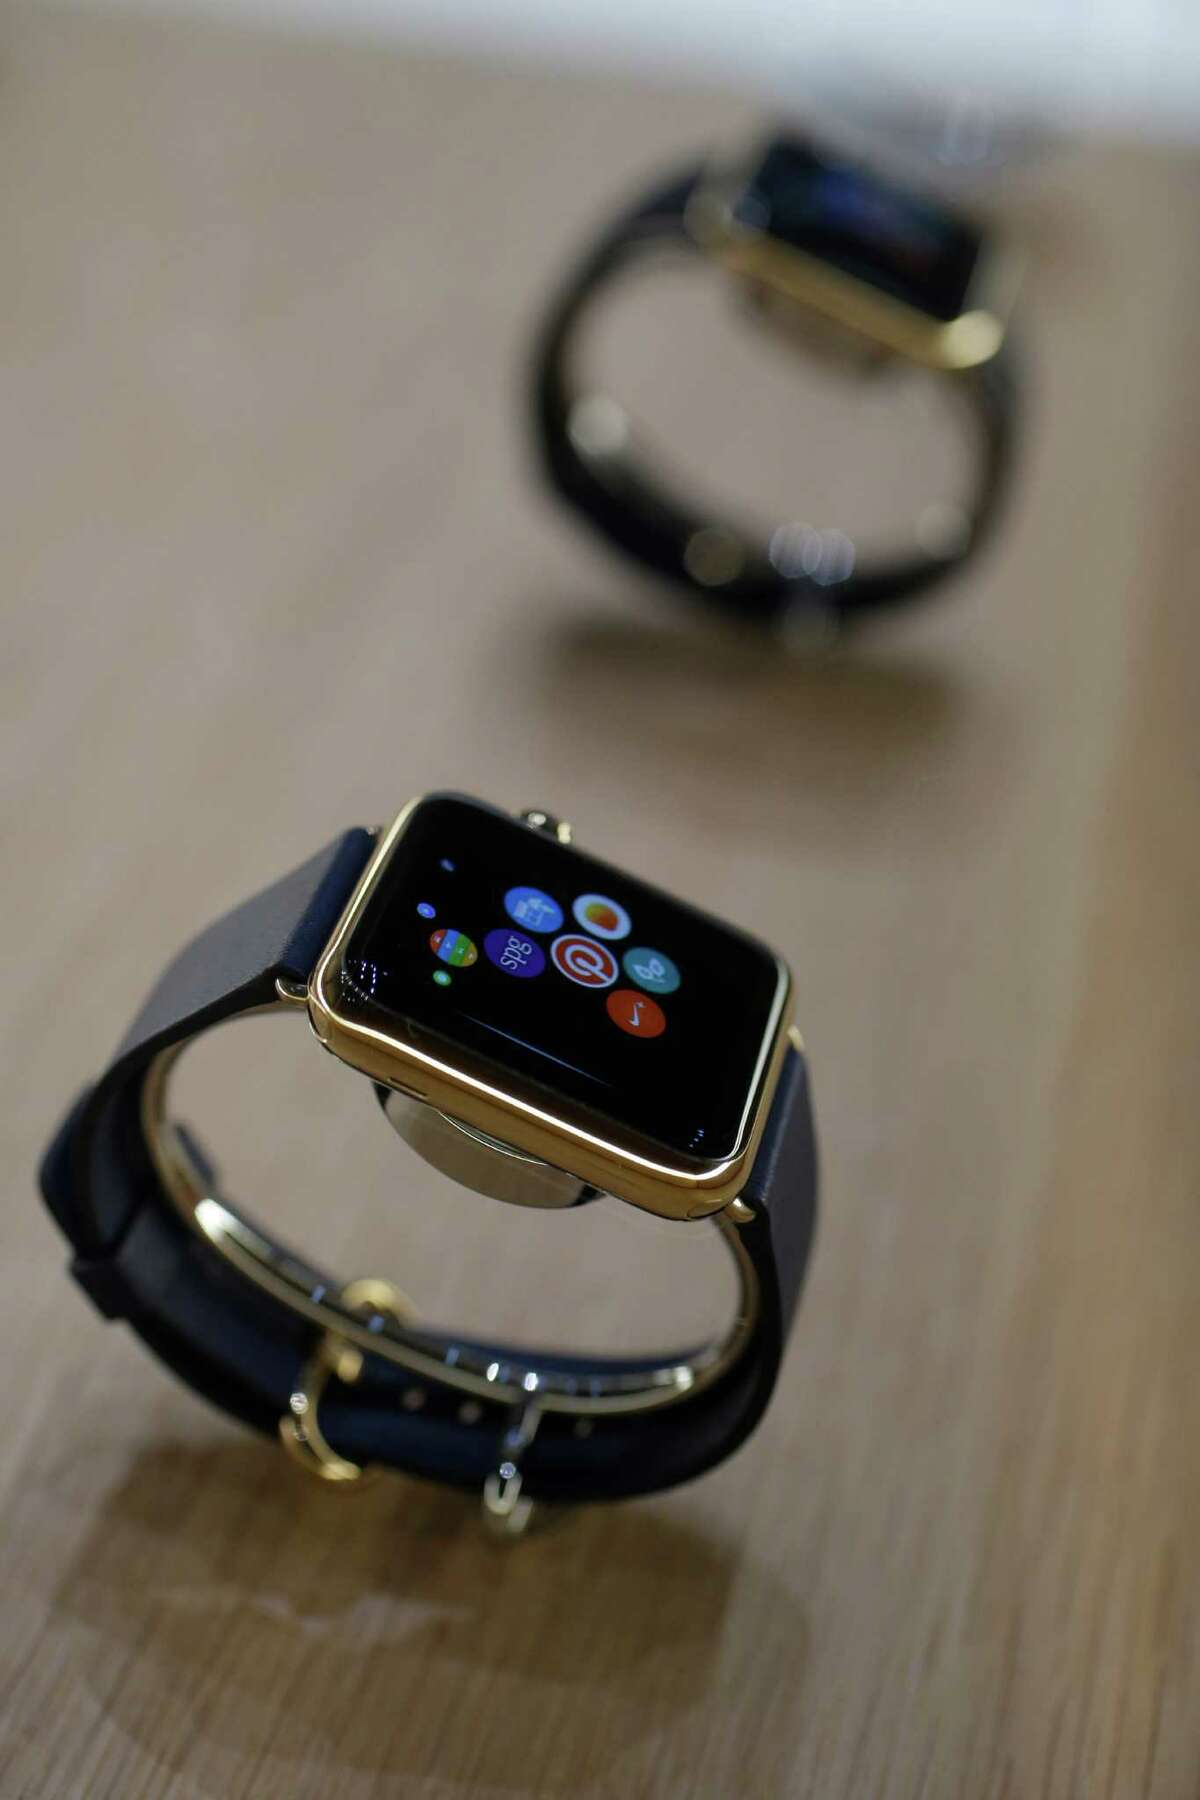 The Apple Watch is displayed on Tuesday, Sept. 9, 2014, in Cupertino, Calif.AP Review: Apple Watch looks to be another winner